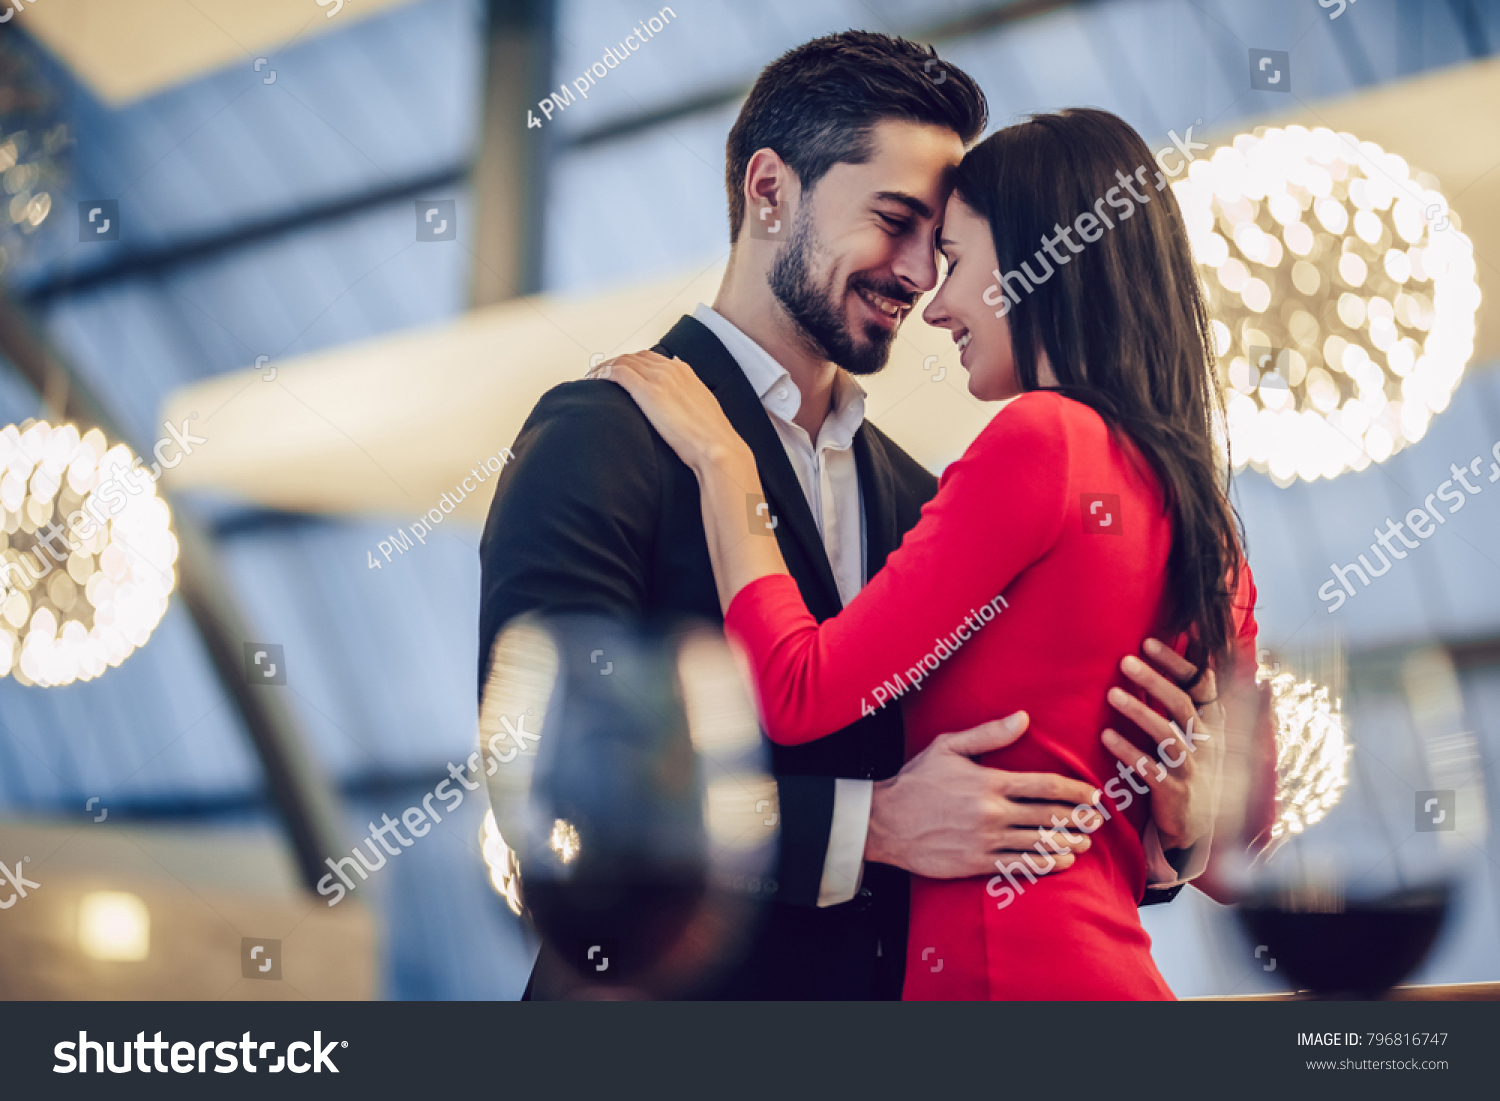 Beautiful loving couple is spending time together in modern restaurant. Attractive young woman in dress and handsome man in suit are having romantic dinner. Celebrating Saint Valentine's Day. #796816747